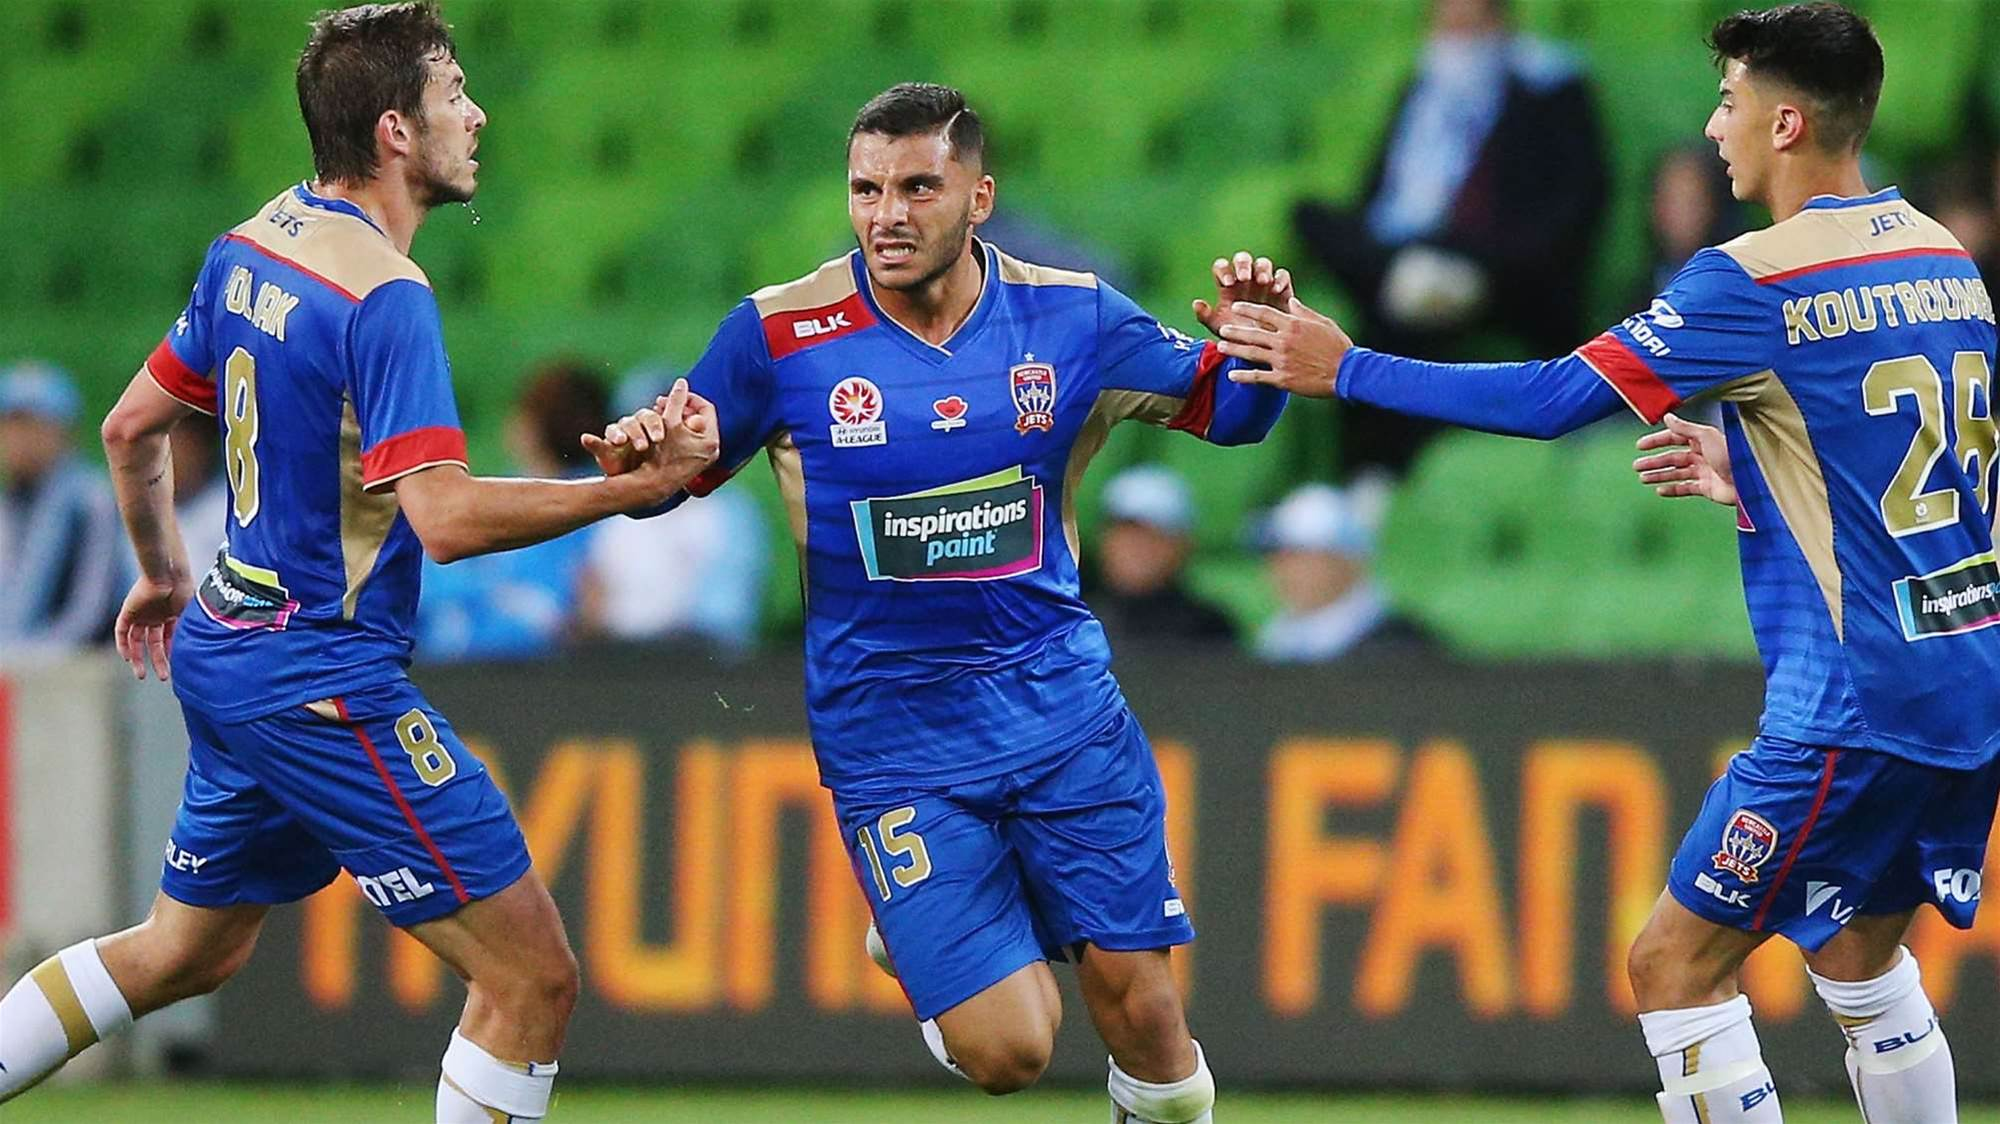 Nabbout: I always knew I was good enough